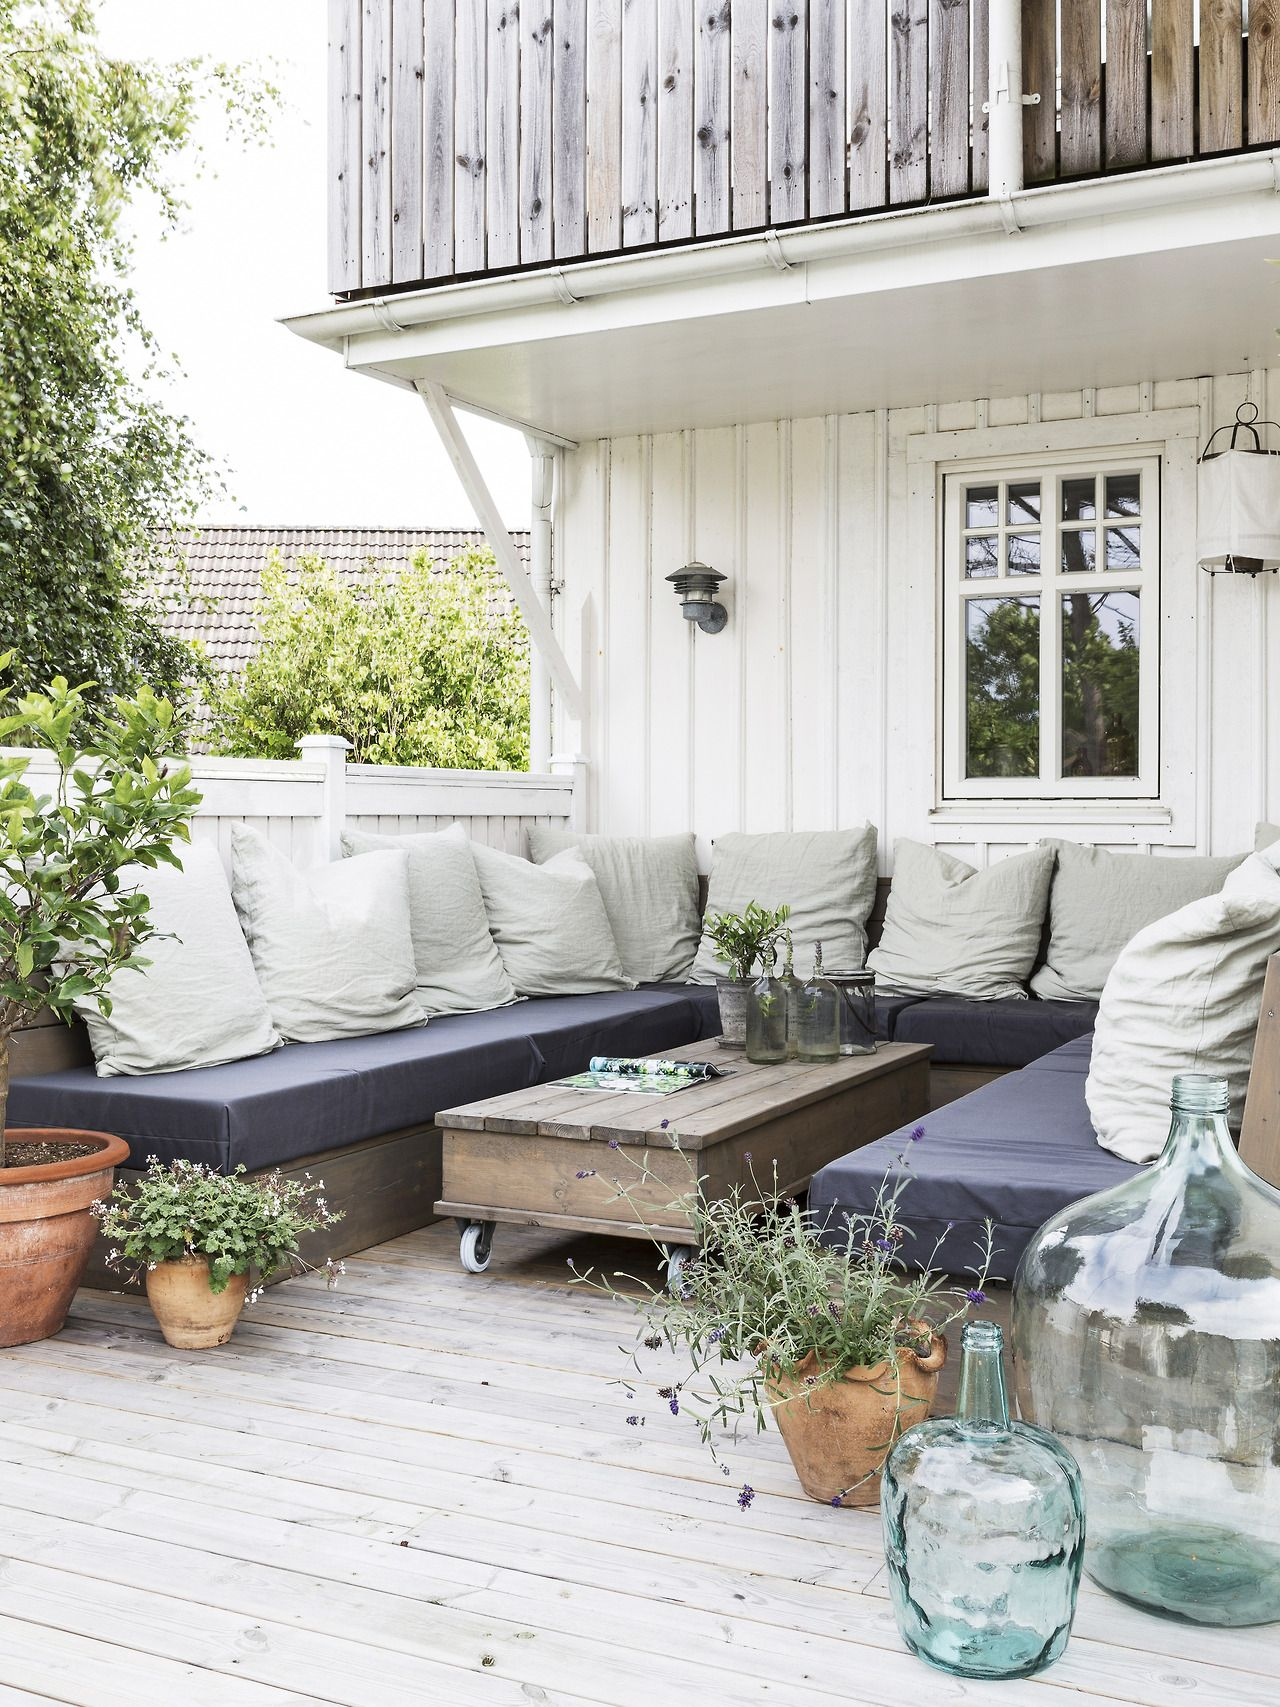 Swedish country home photos by Carina